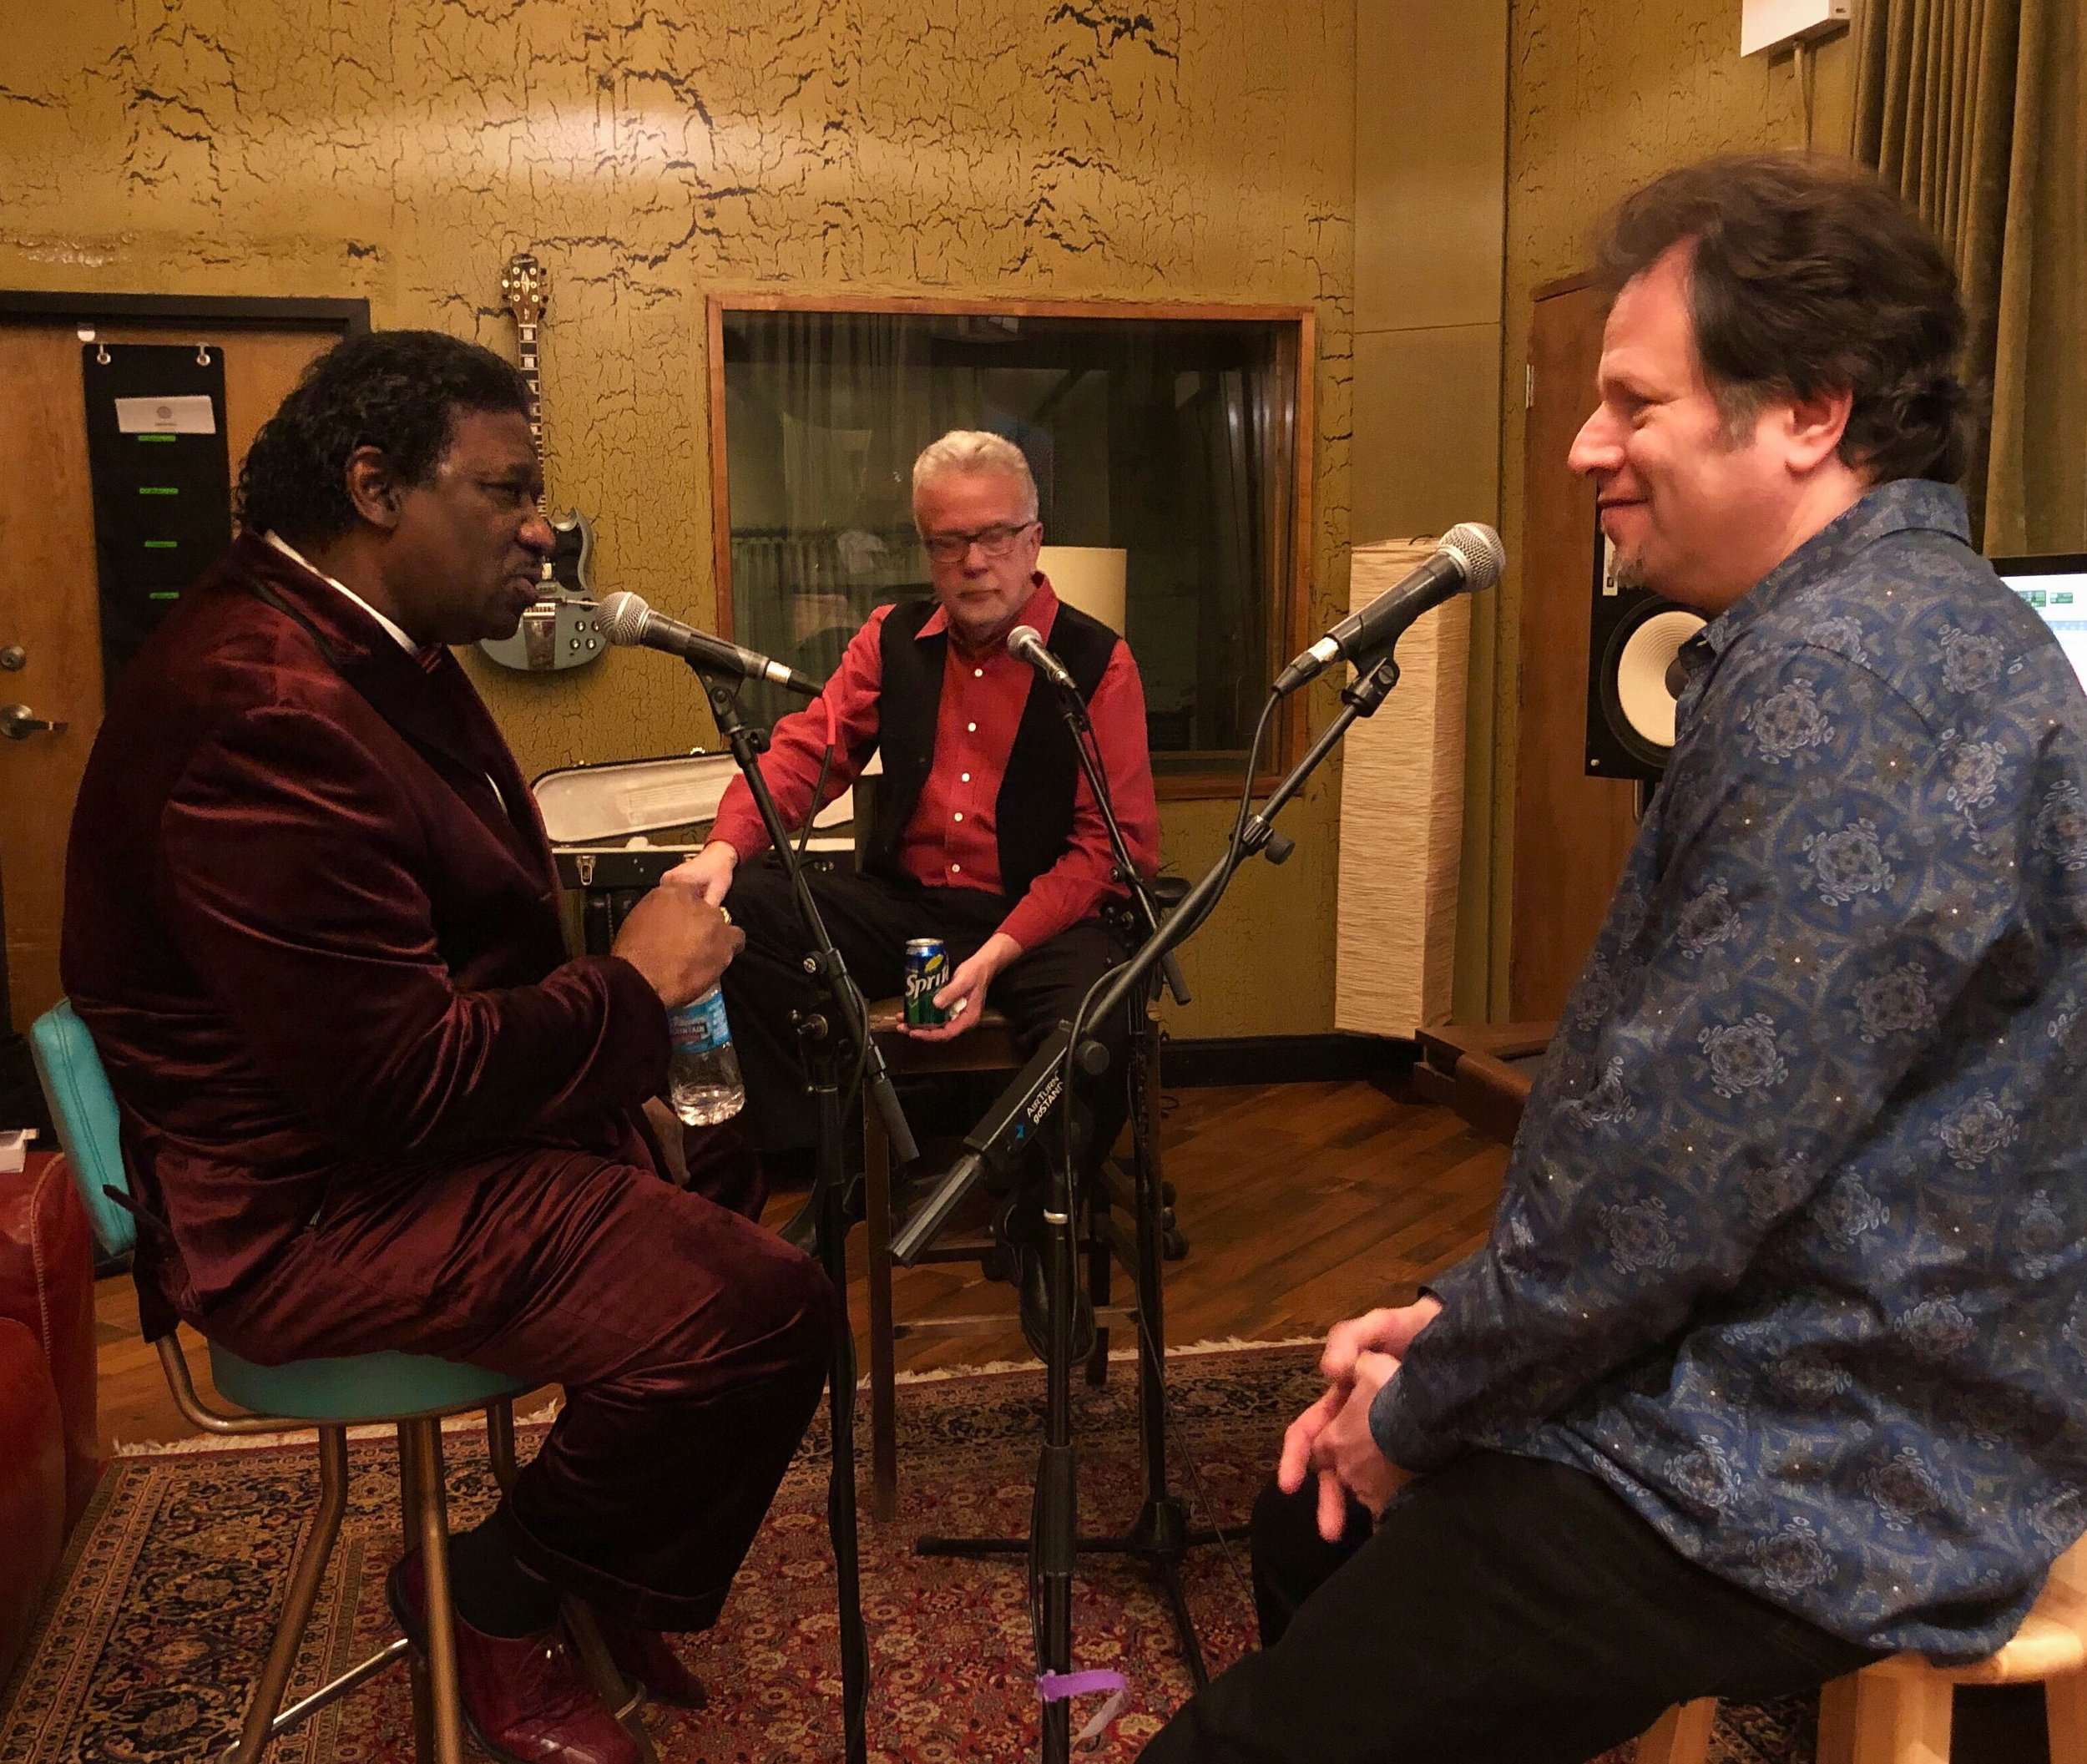 mud morganfield & rick kreher - A session withMud Morganfield & Rick Kreher